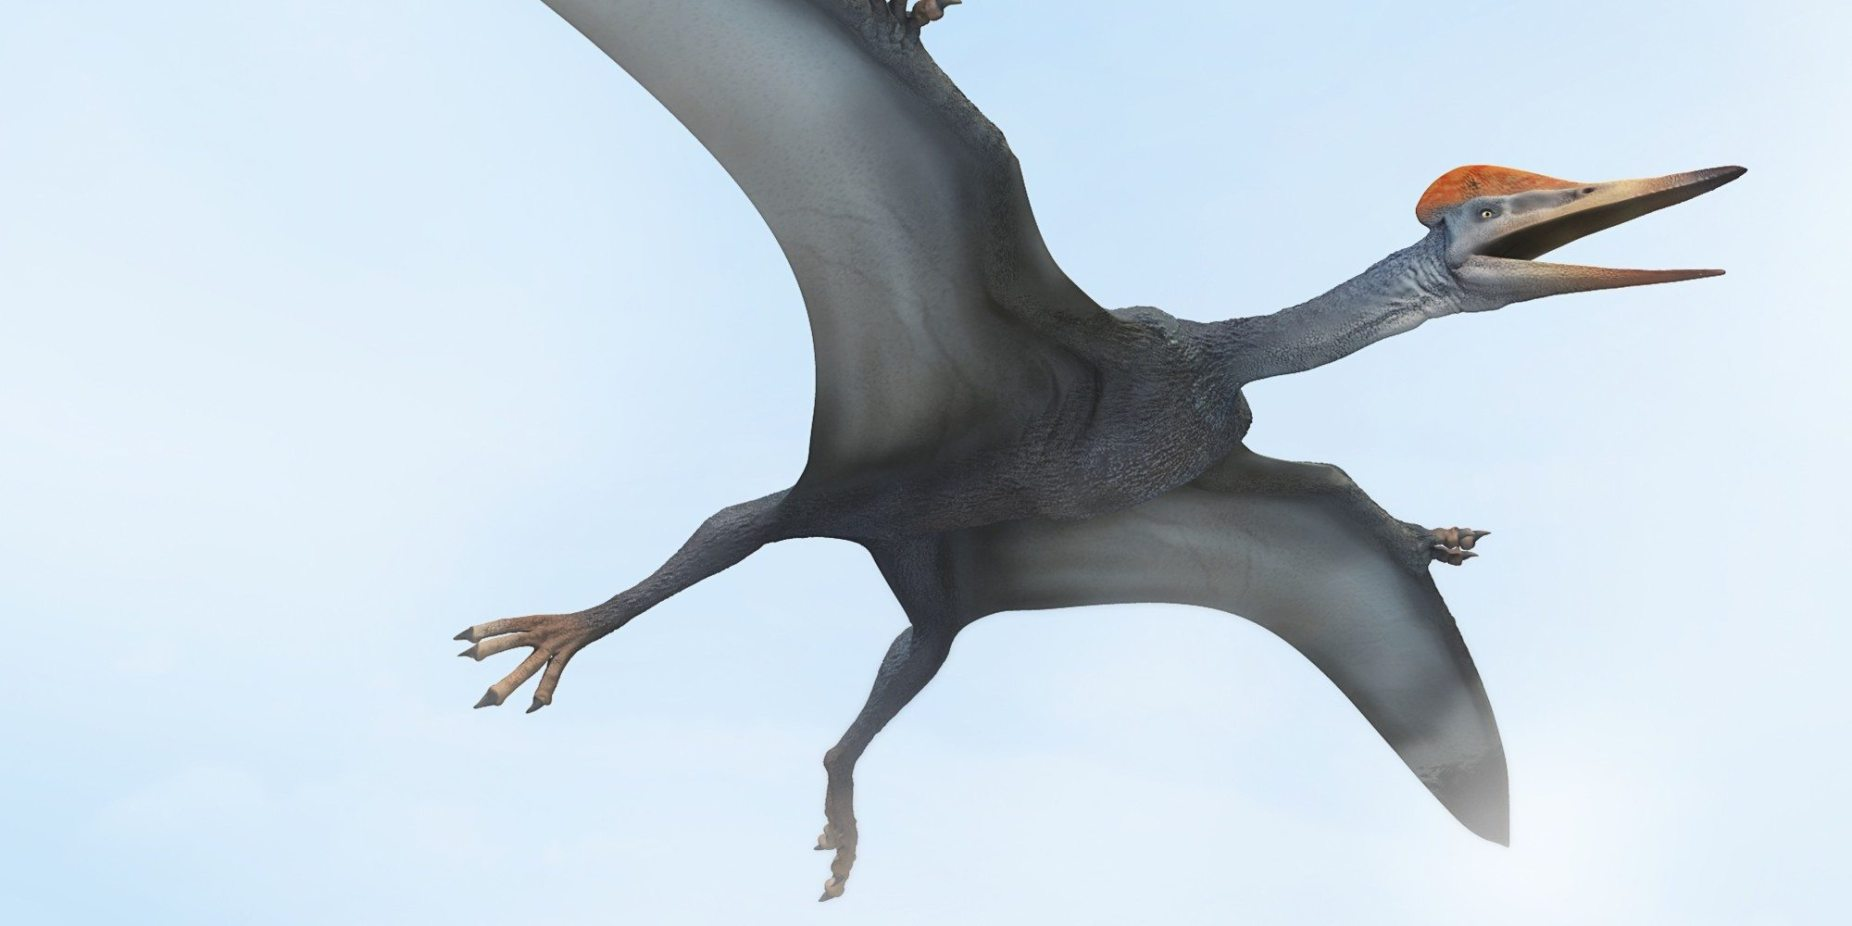 Image: The Pterodactyl, a dinosaur that was one of the first reptiles to take to the skies